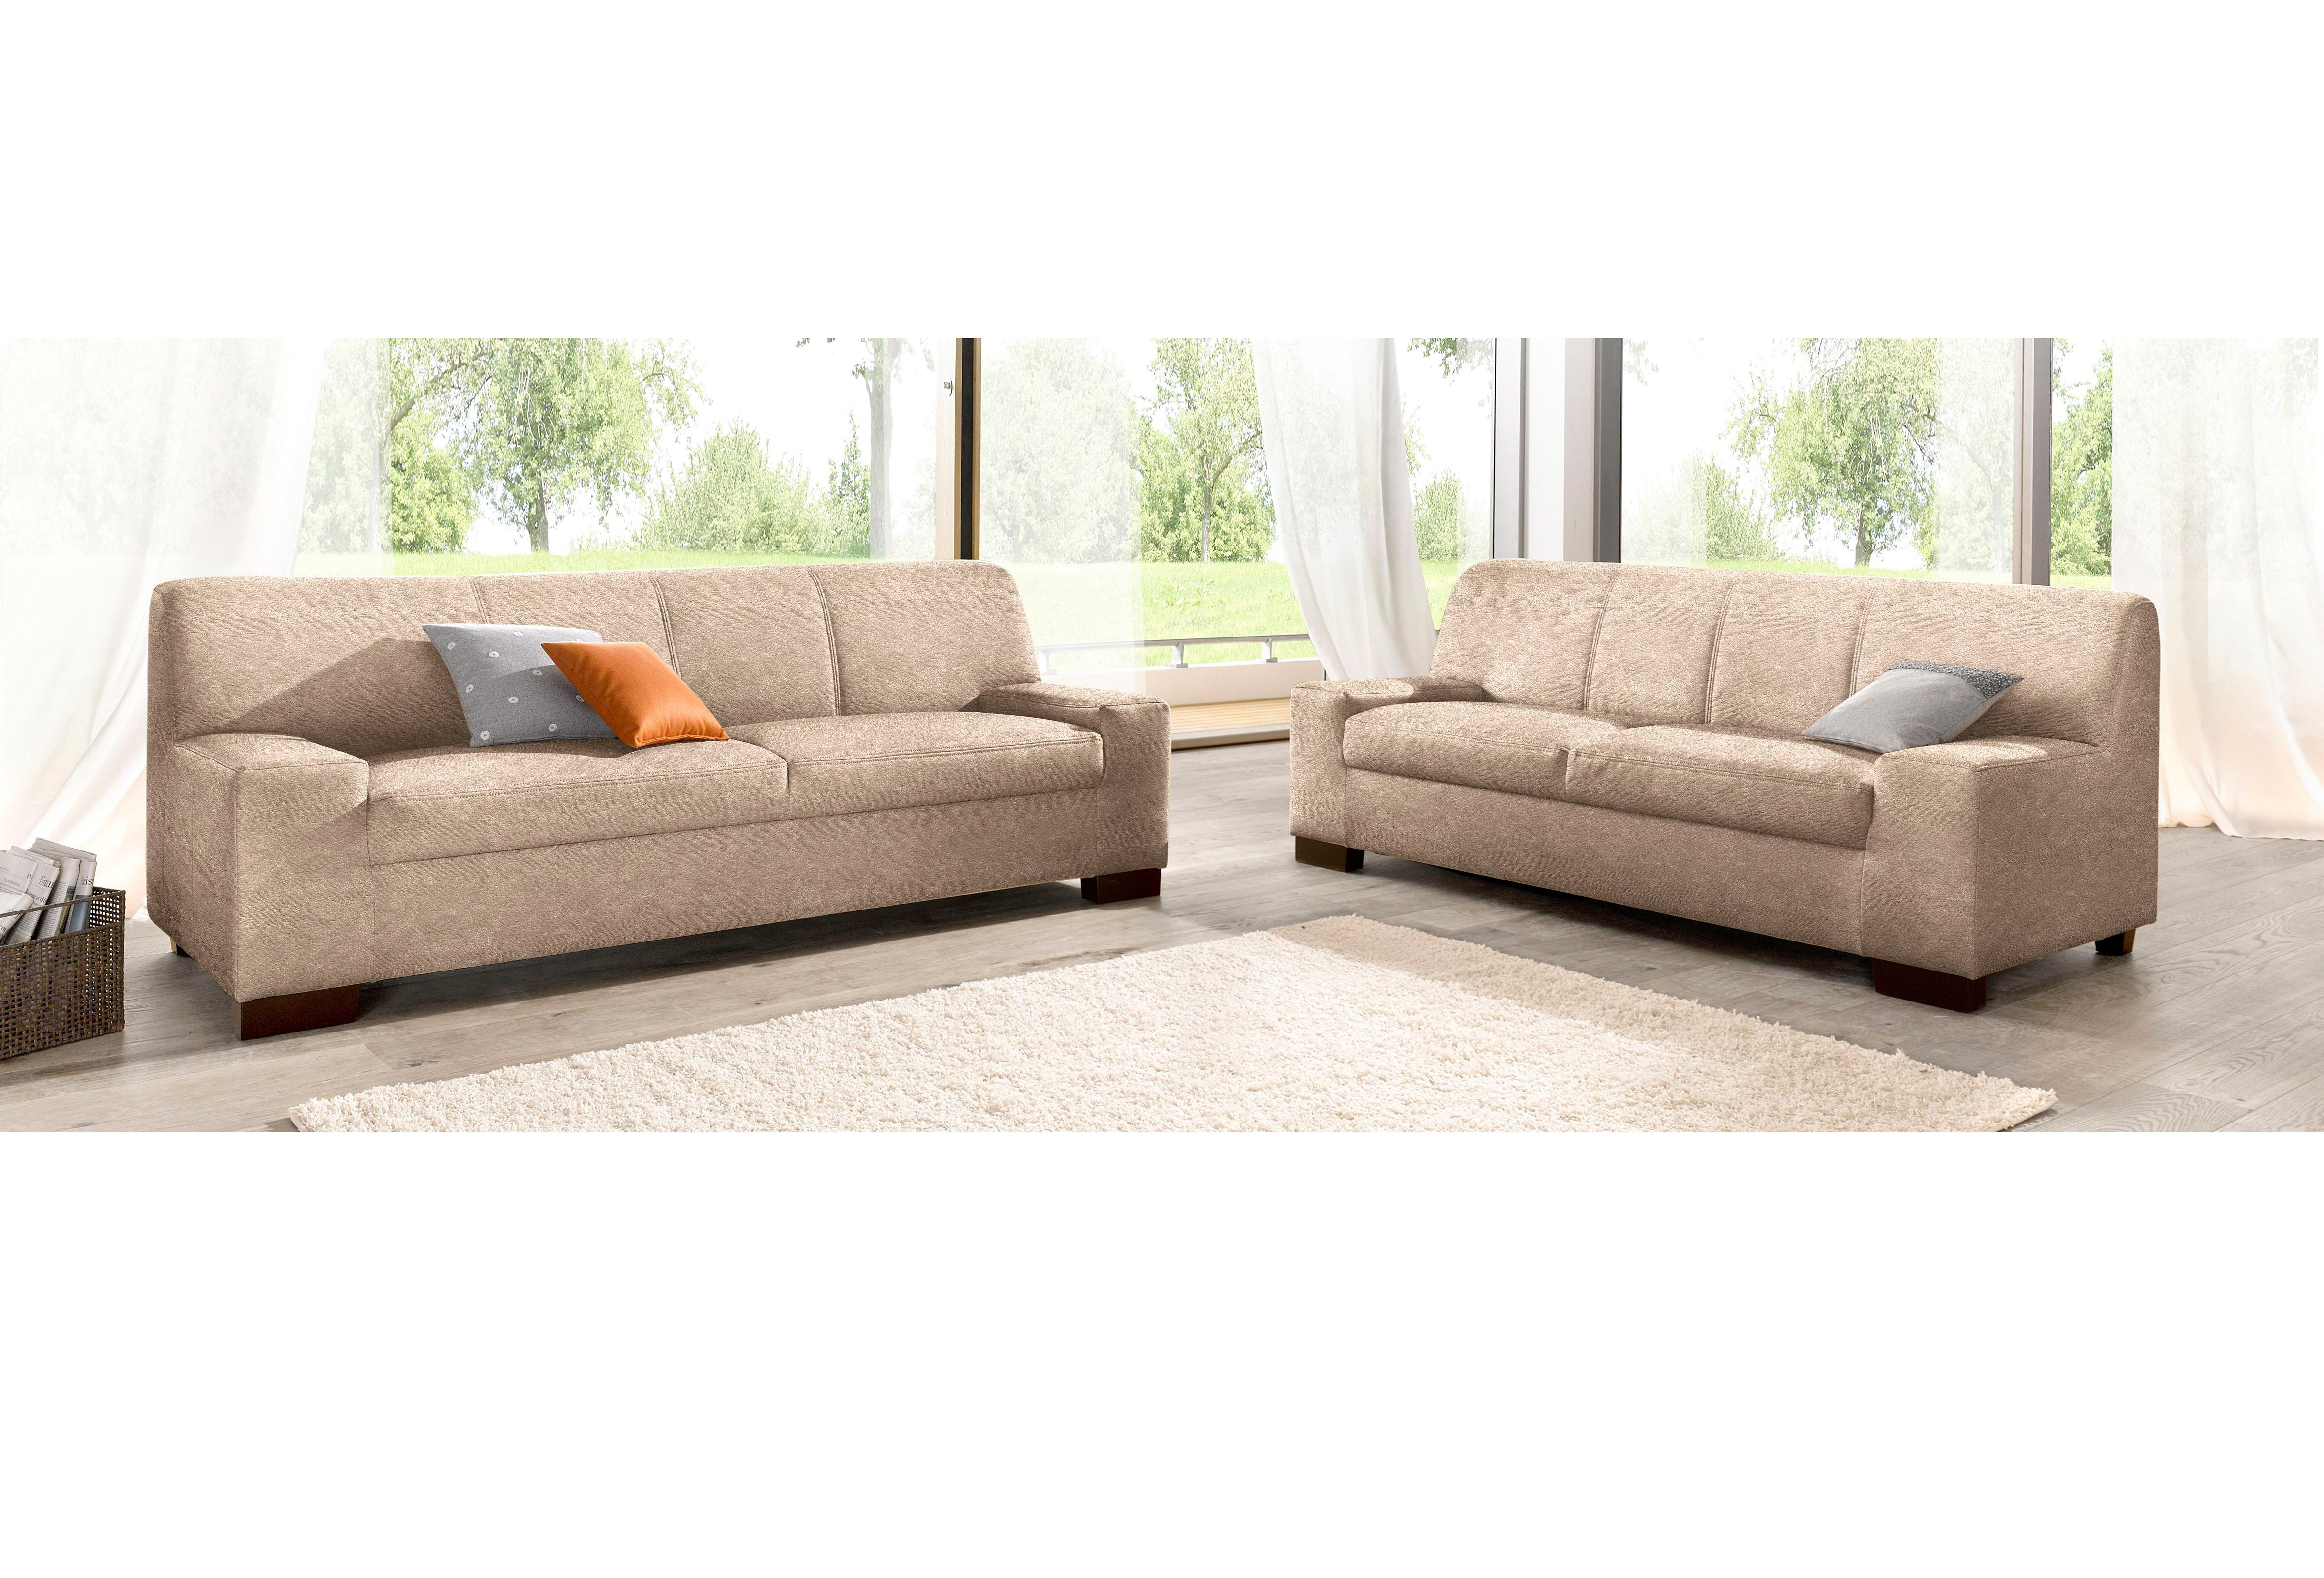 Couchgarnituren Sale Domo Collection Polstergarnitur, (set, 2-tlg) | Otto